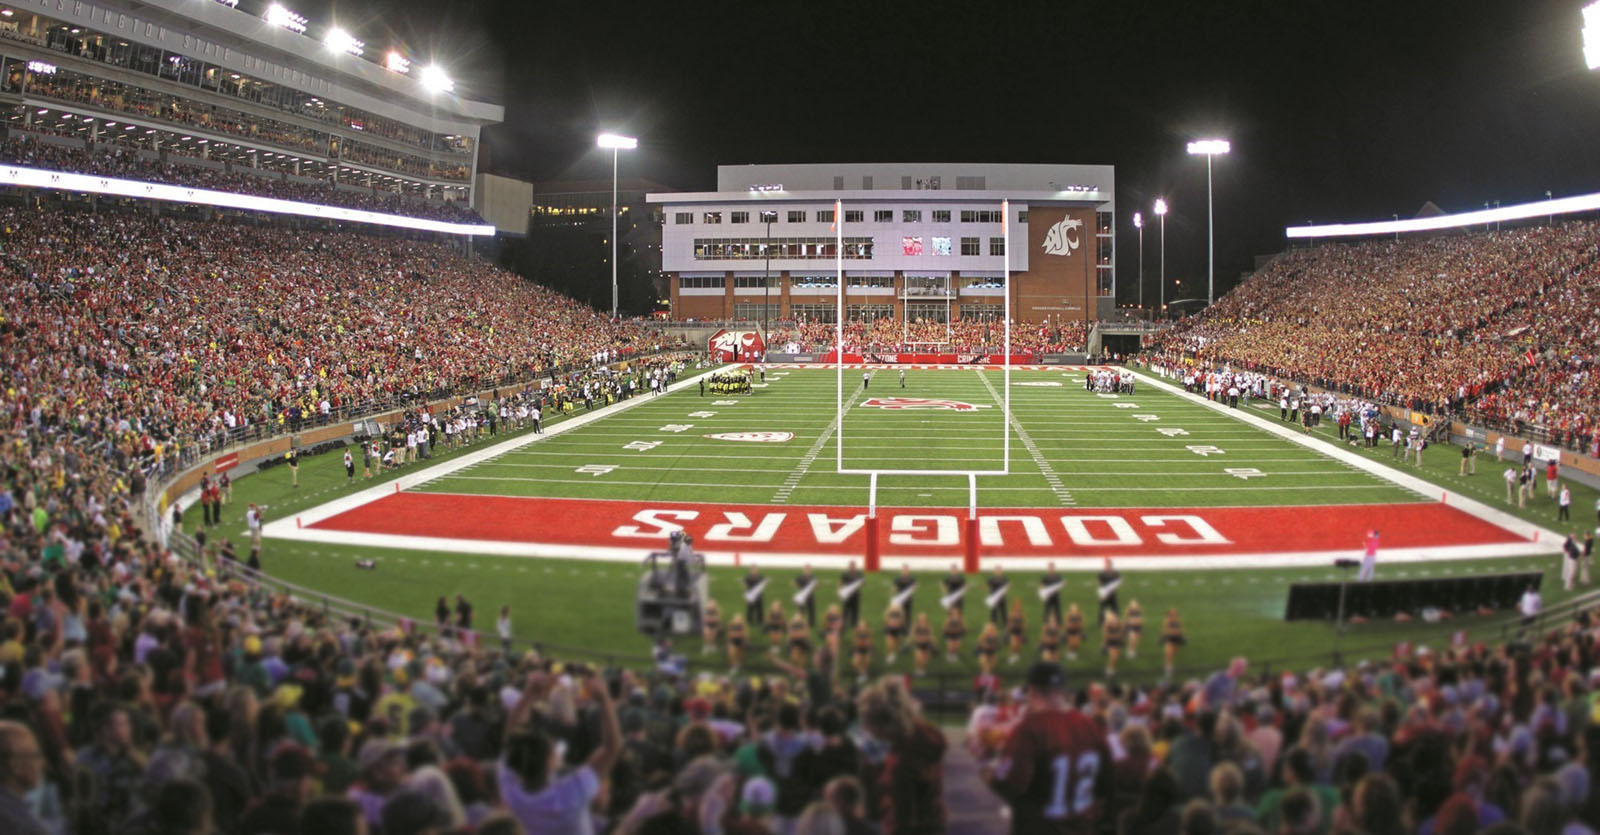 Martin Stadium with a crowd during a football game, night time